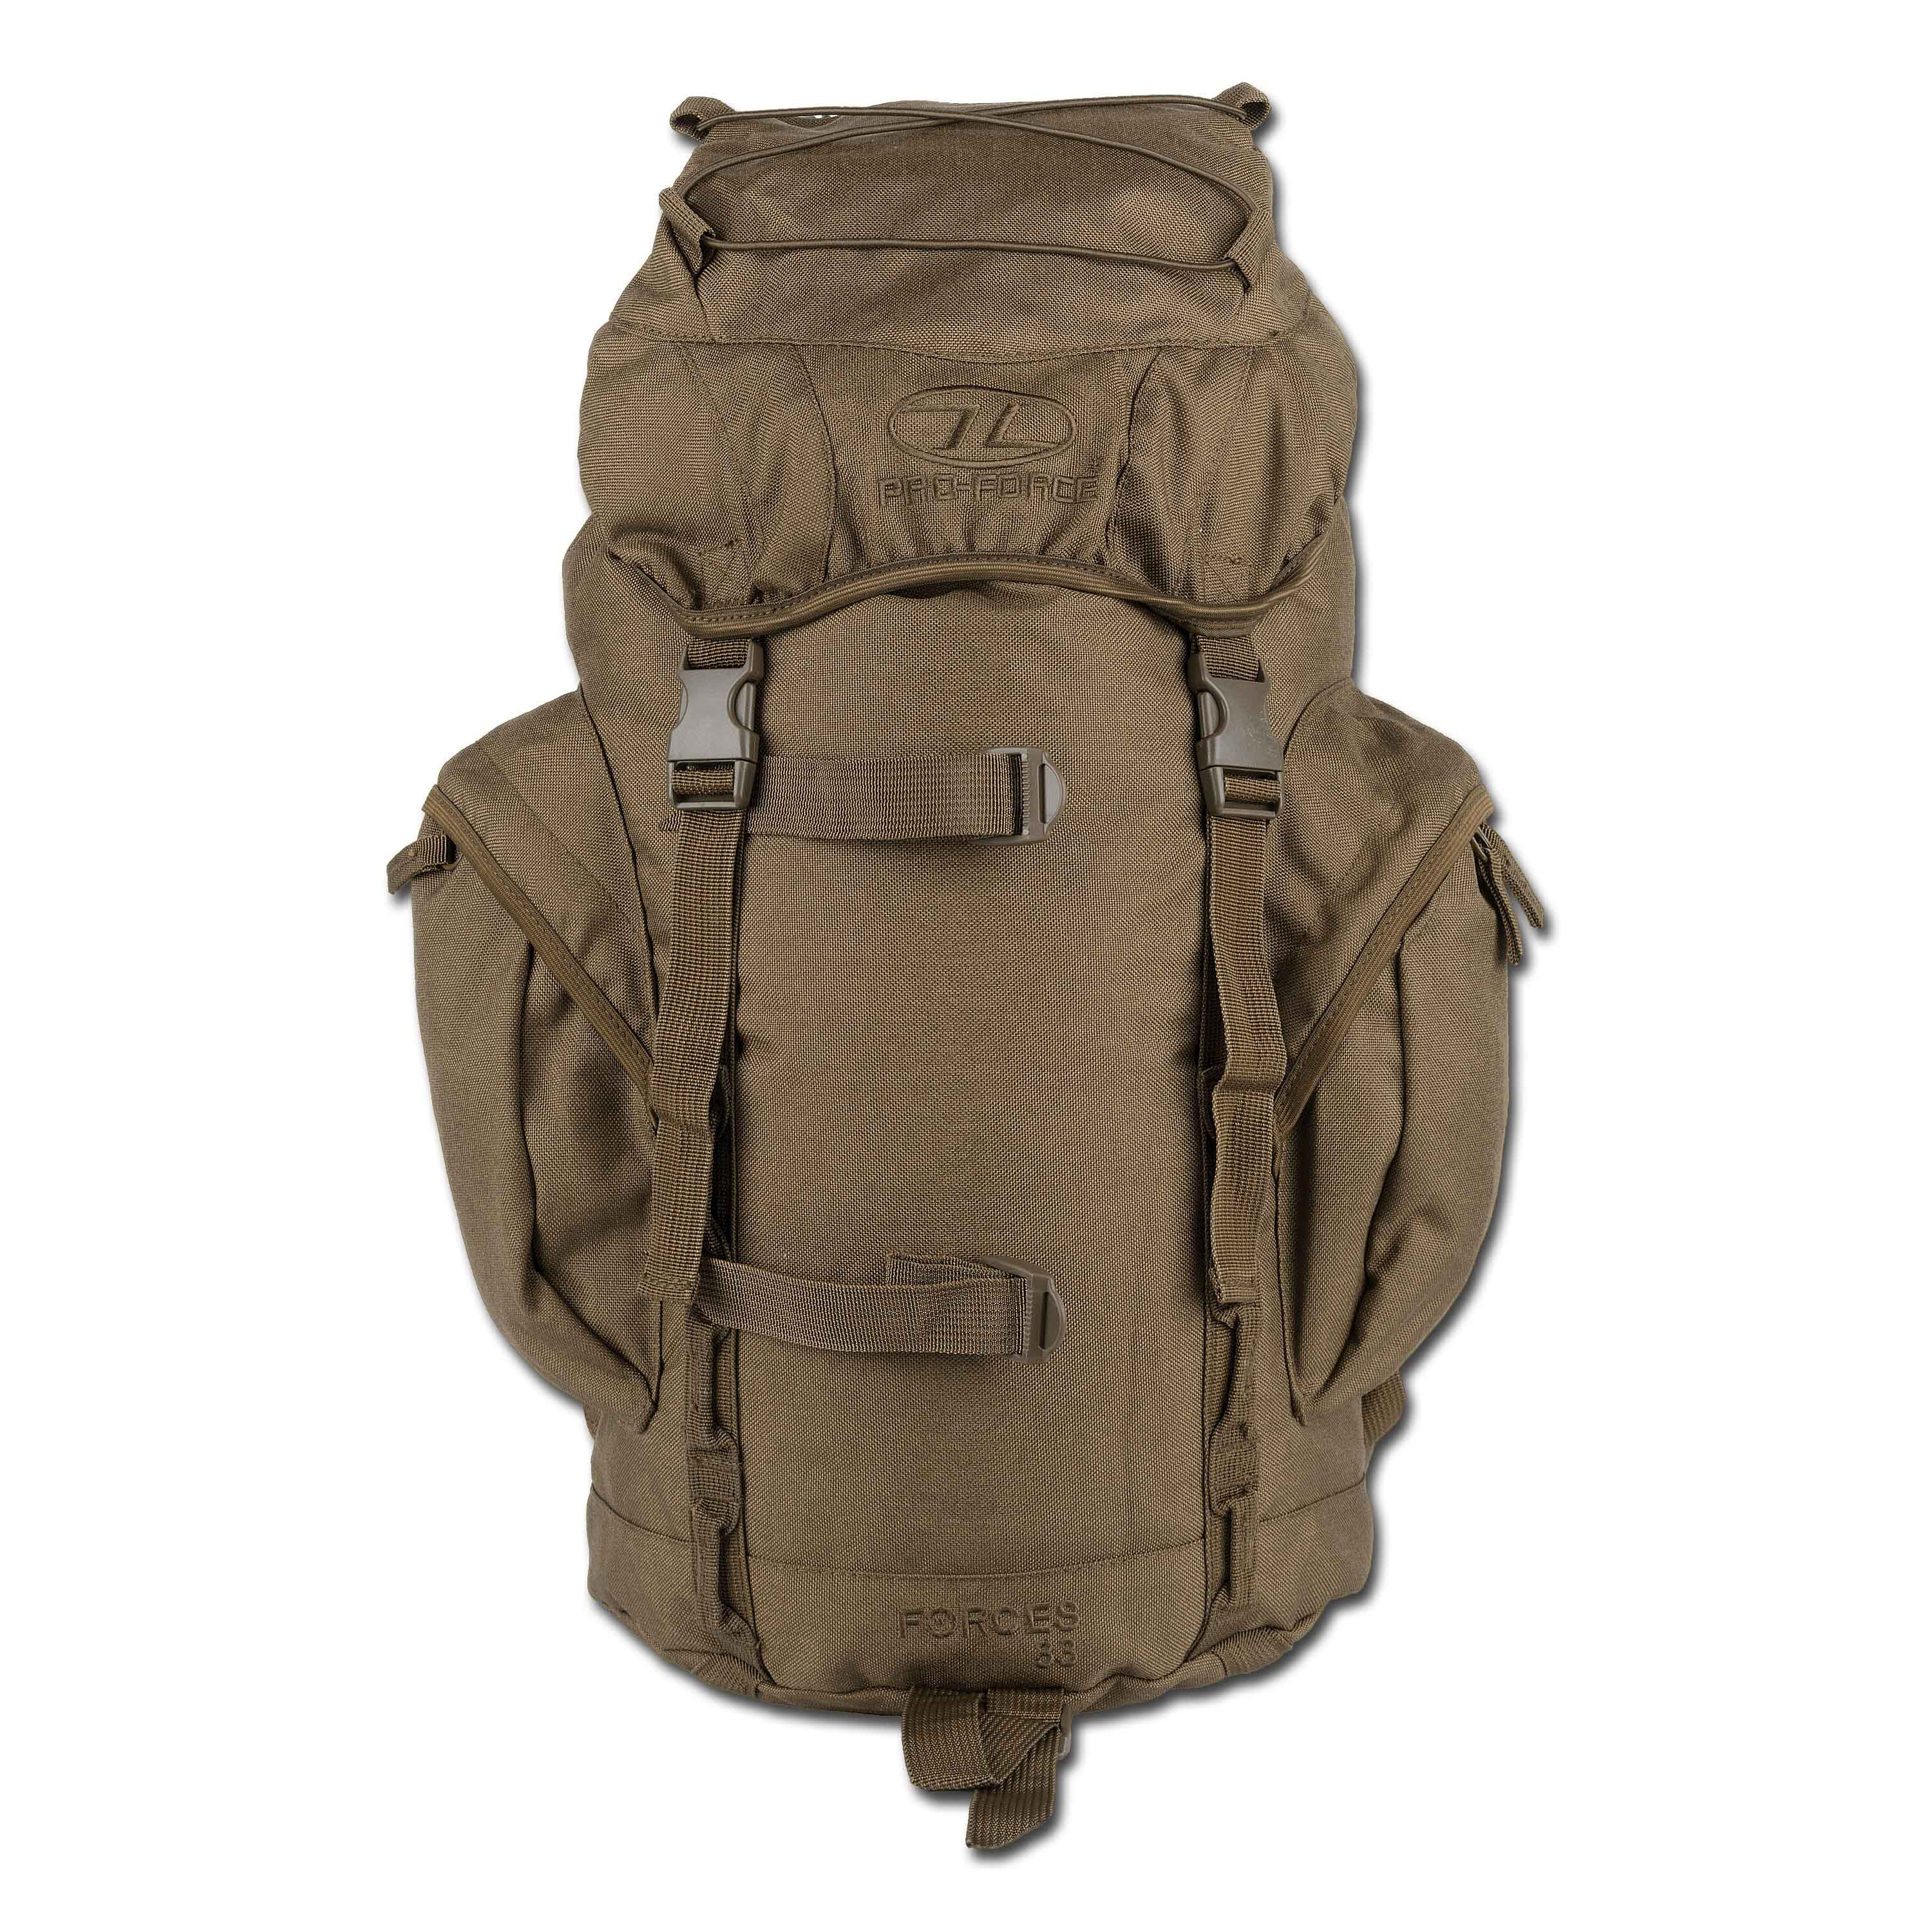 Rucksack Pro Force New Forces 33 L coyote